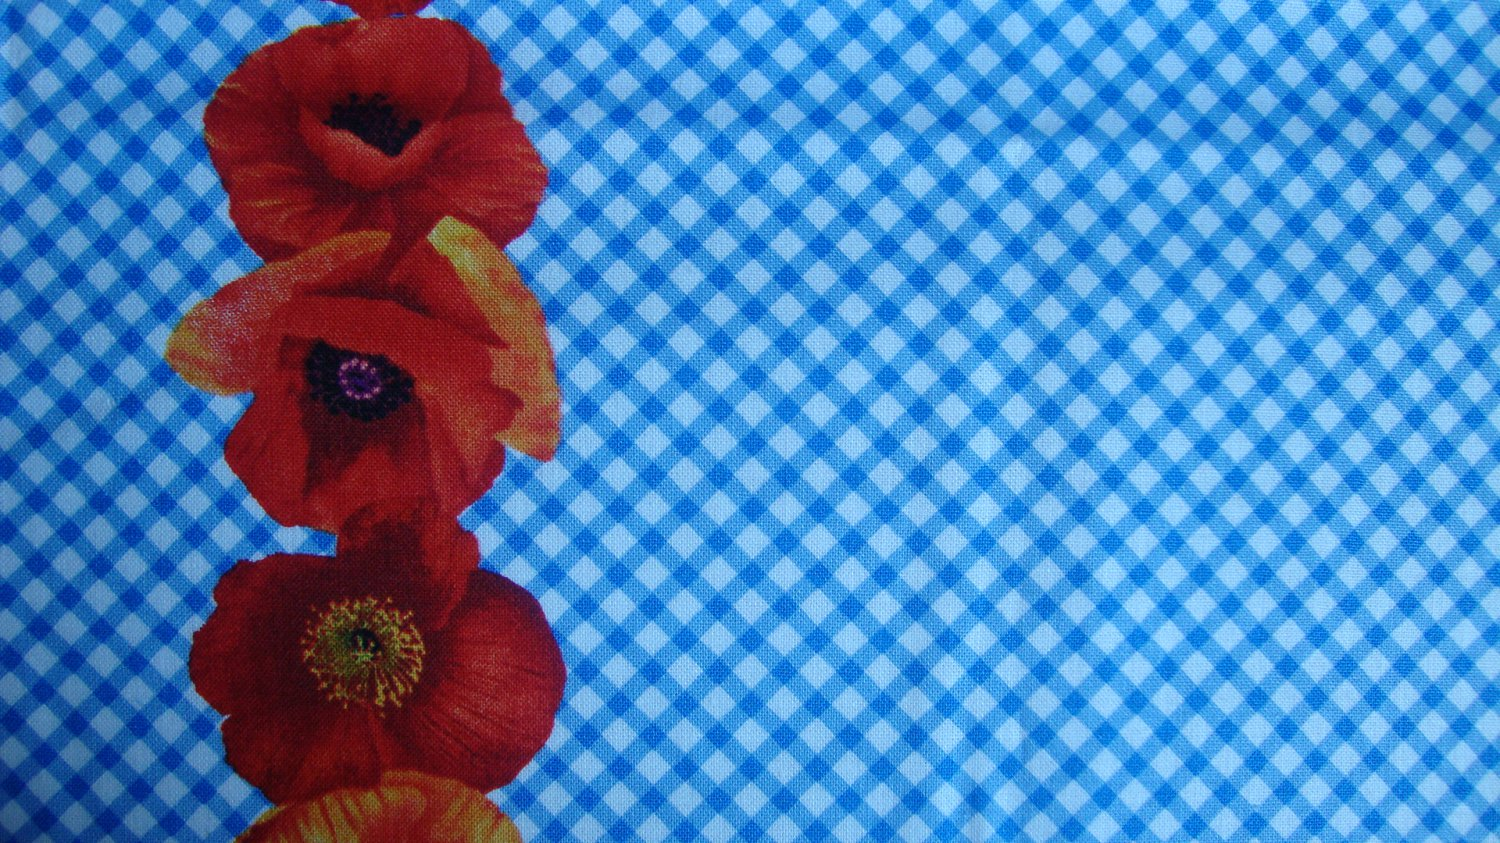 Bolt end wizard of oz magic poppy border blue